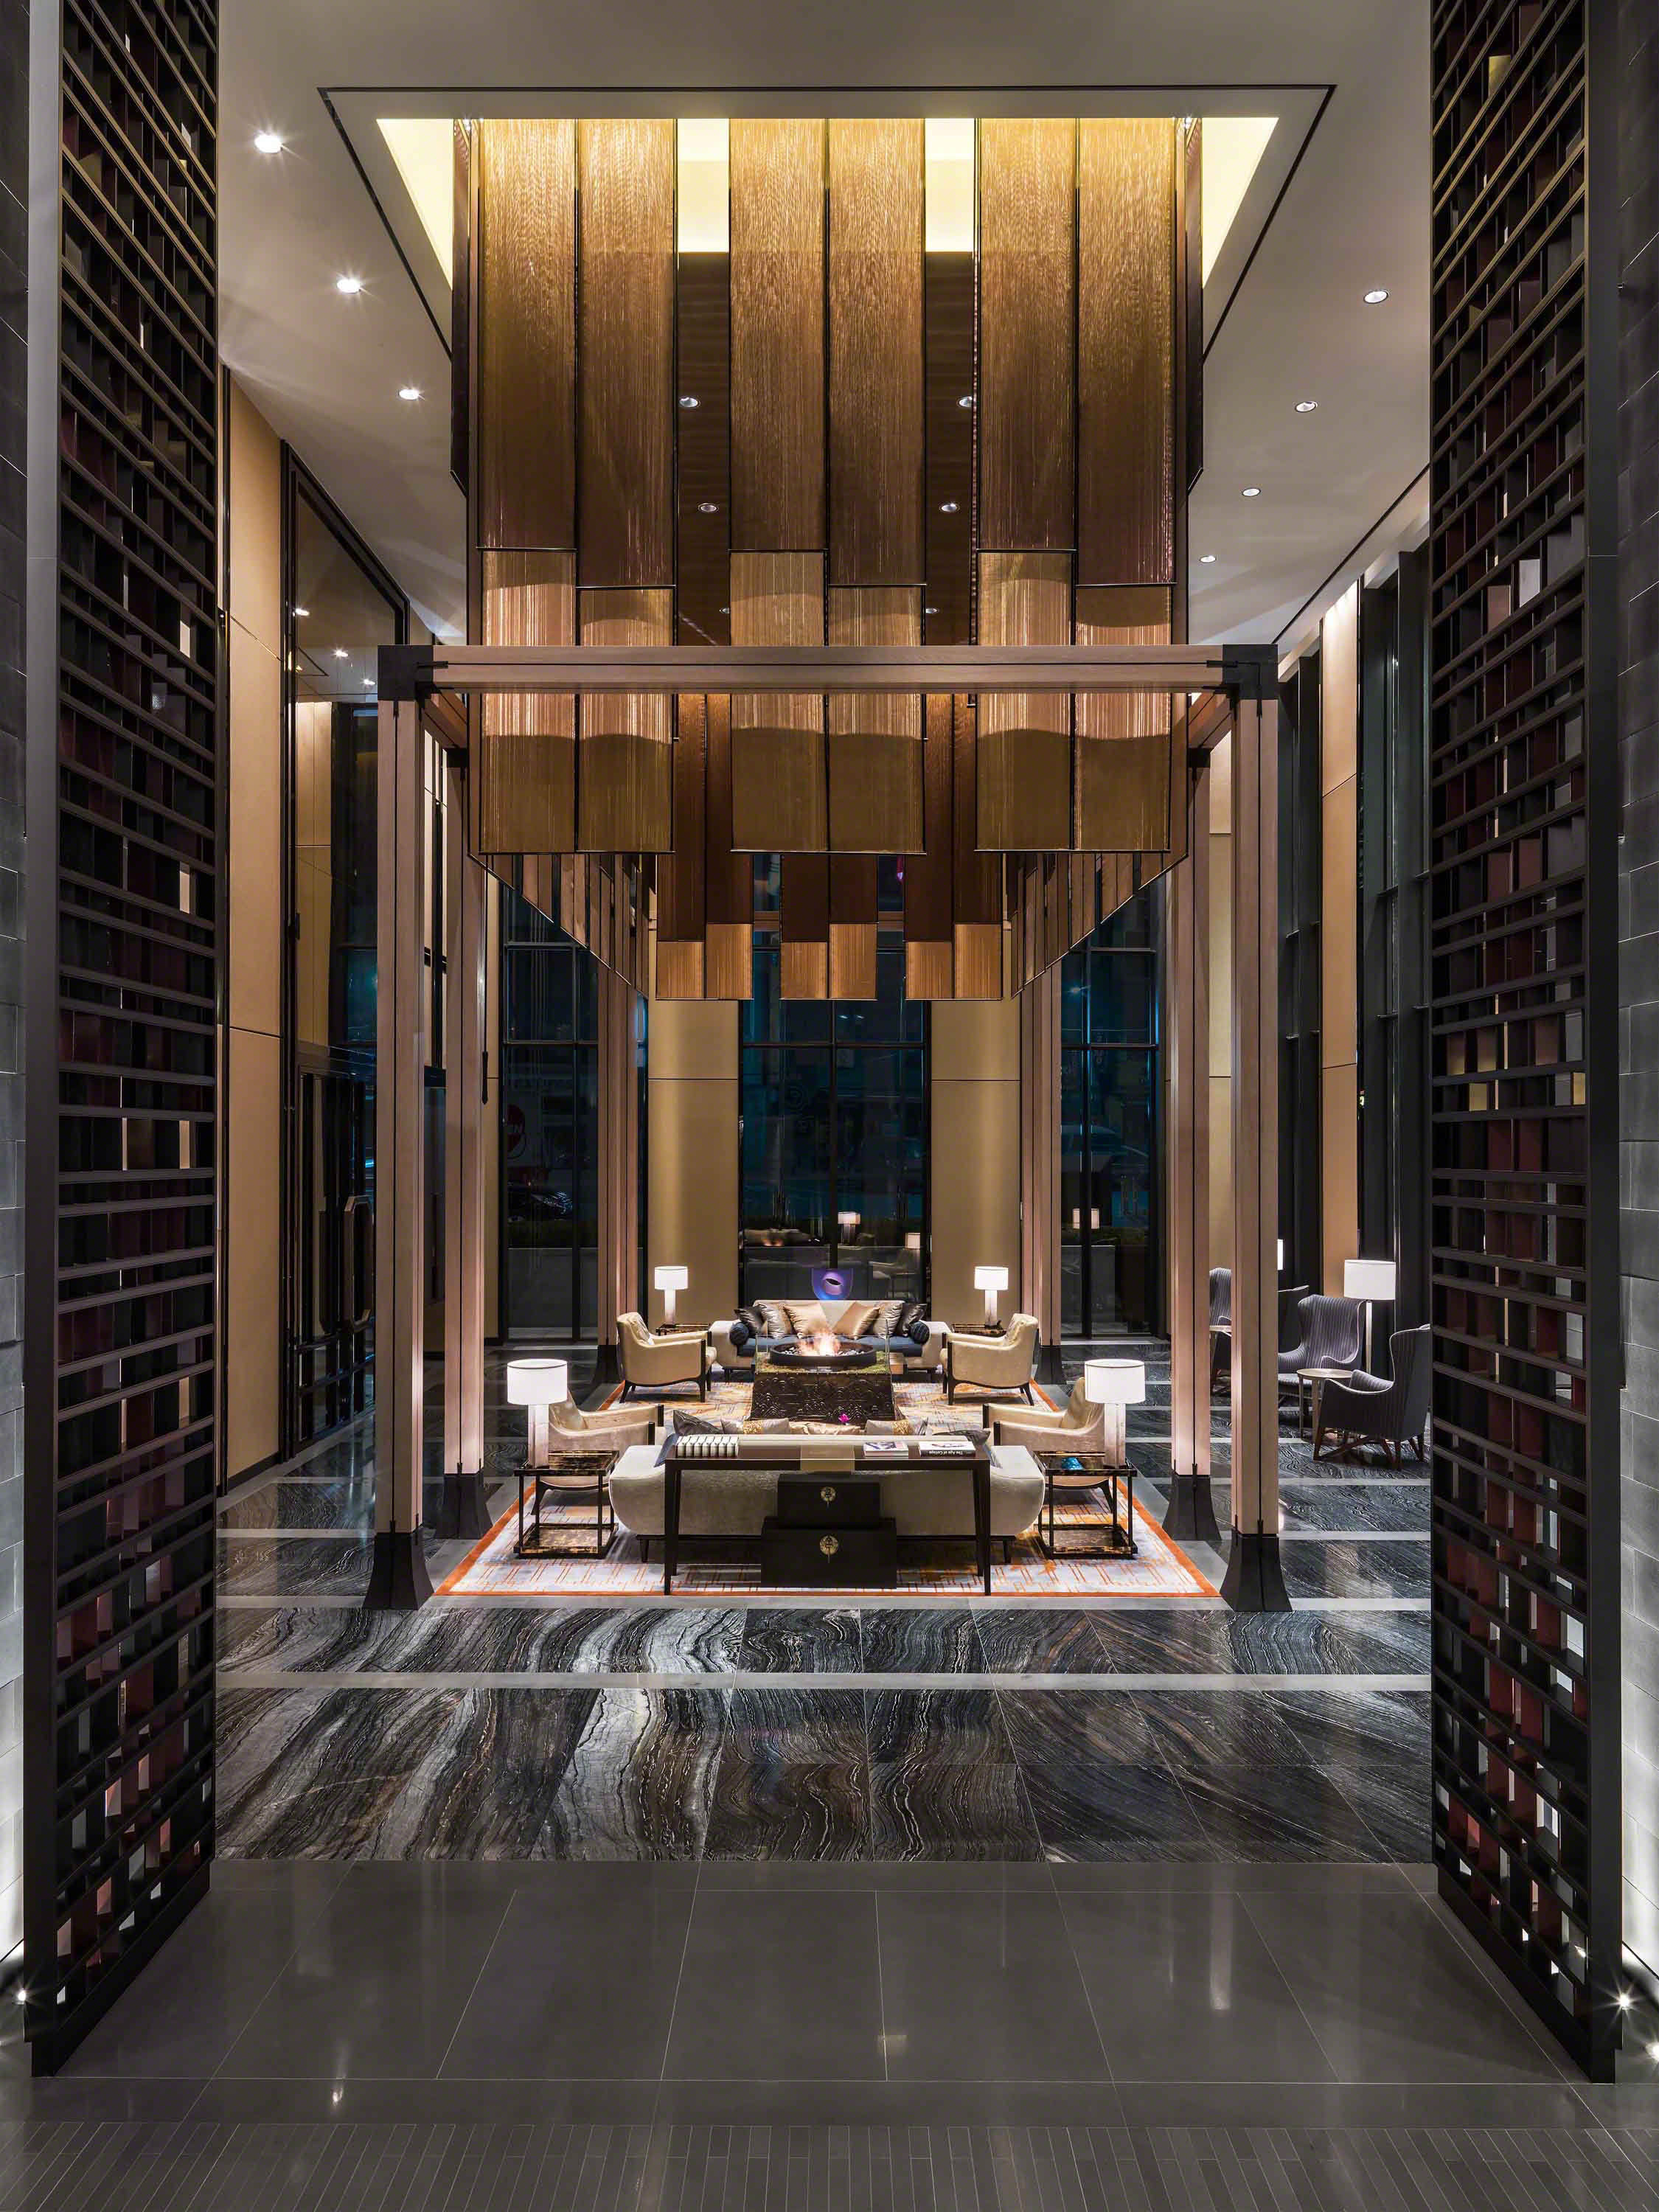 Hospitality-Project-Four-Seasons-Hotel-Seoul-LTW-Design-Works-Woven-Metal-Frames-Sophie-Mallebranche-Paris